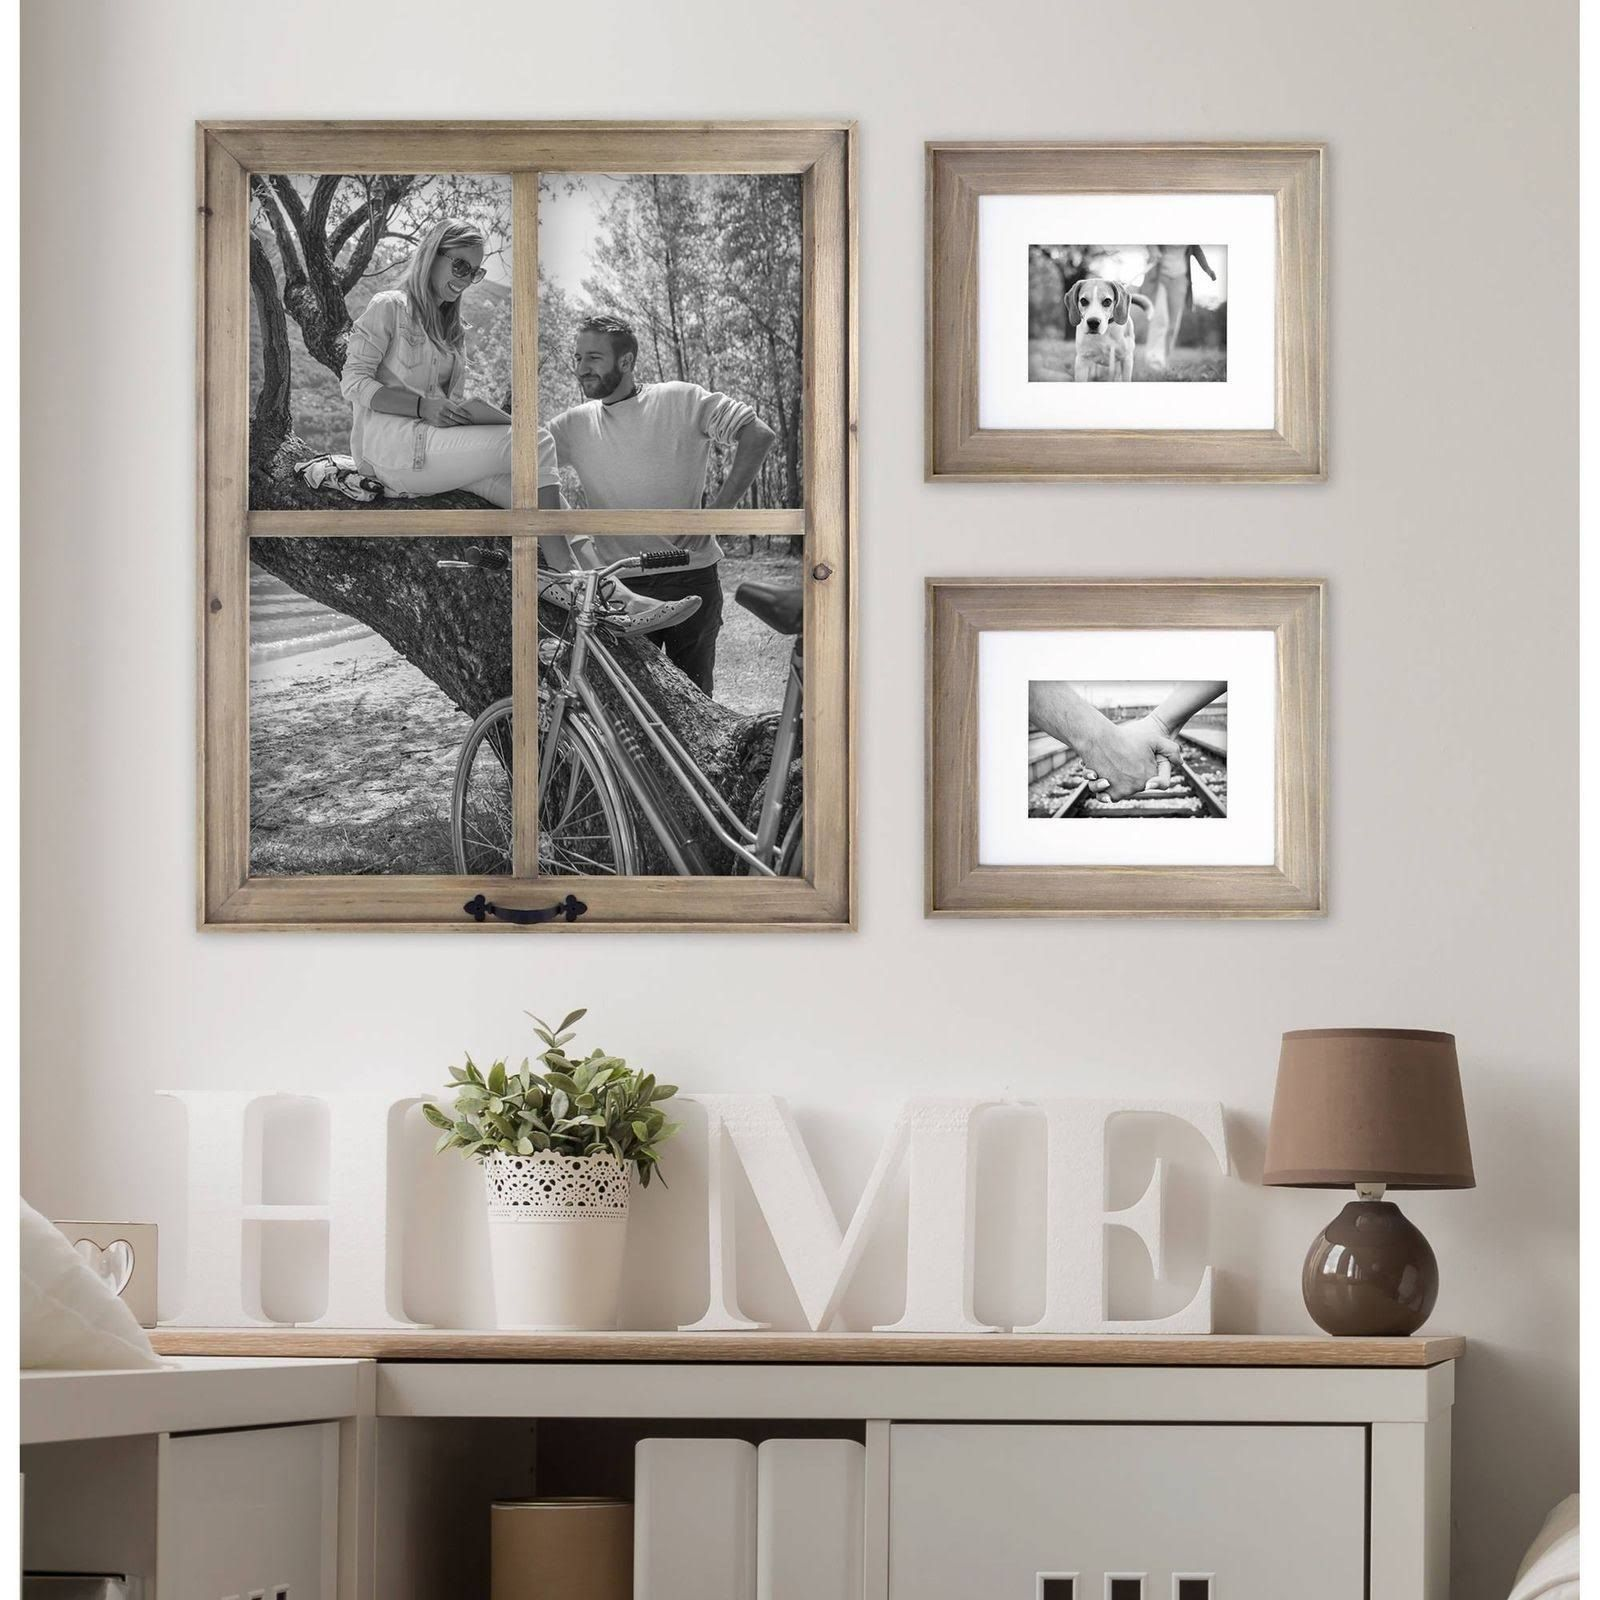 51849100c4e83cda03c36f6c10aa9178 - Better Homes And Gardens 4 Opening Rustic Windowpane Collage Frame